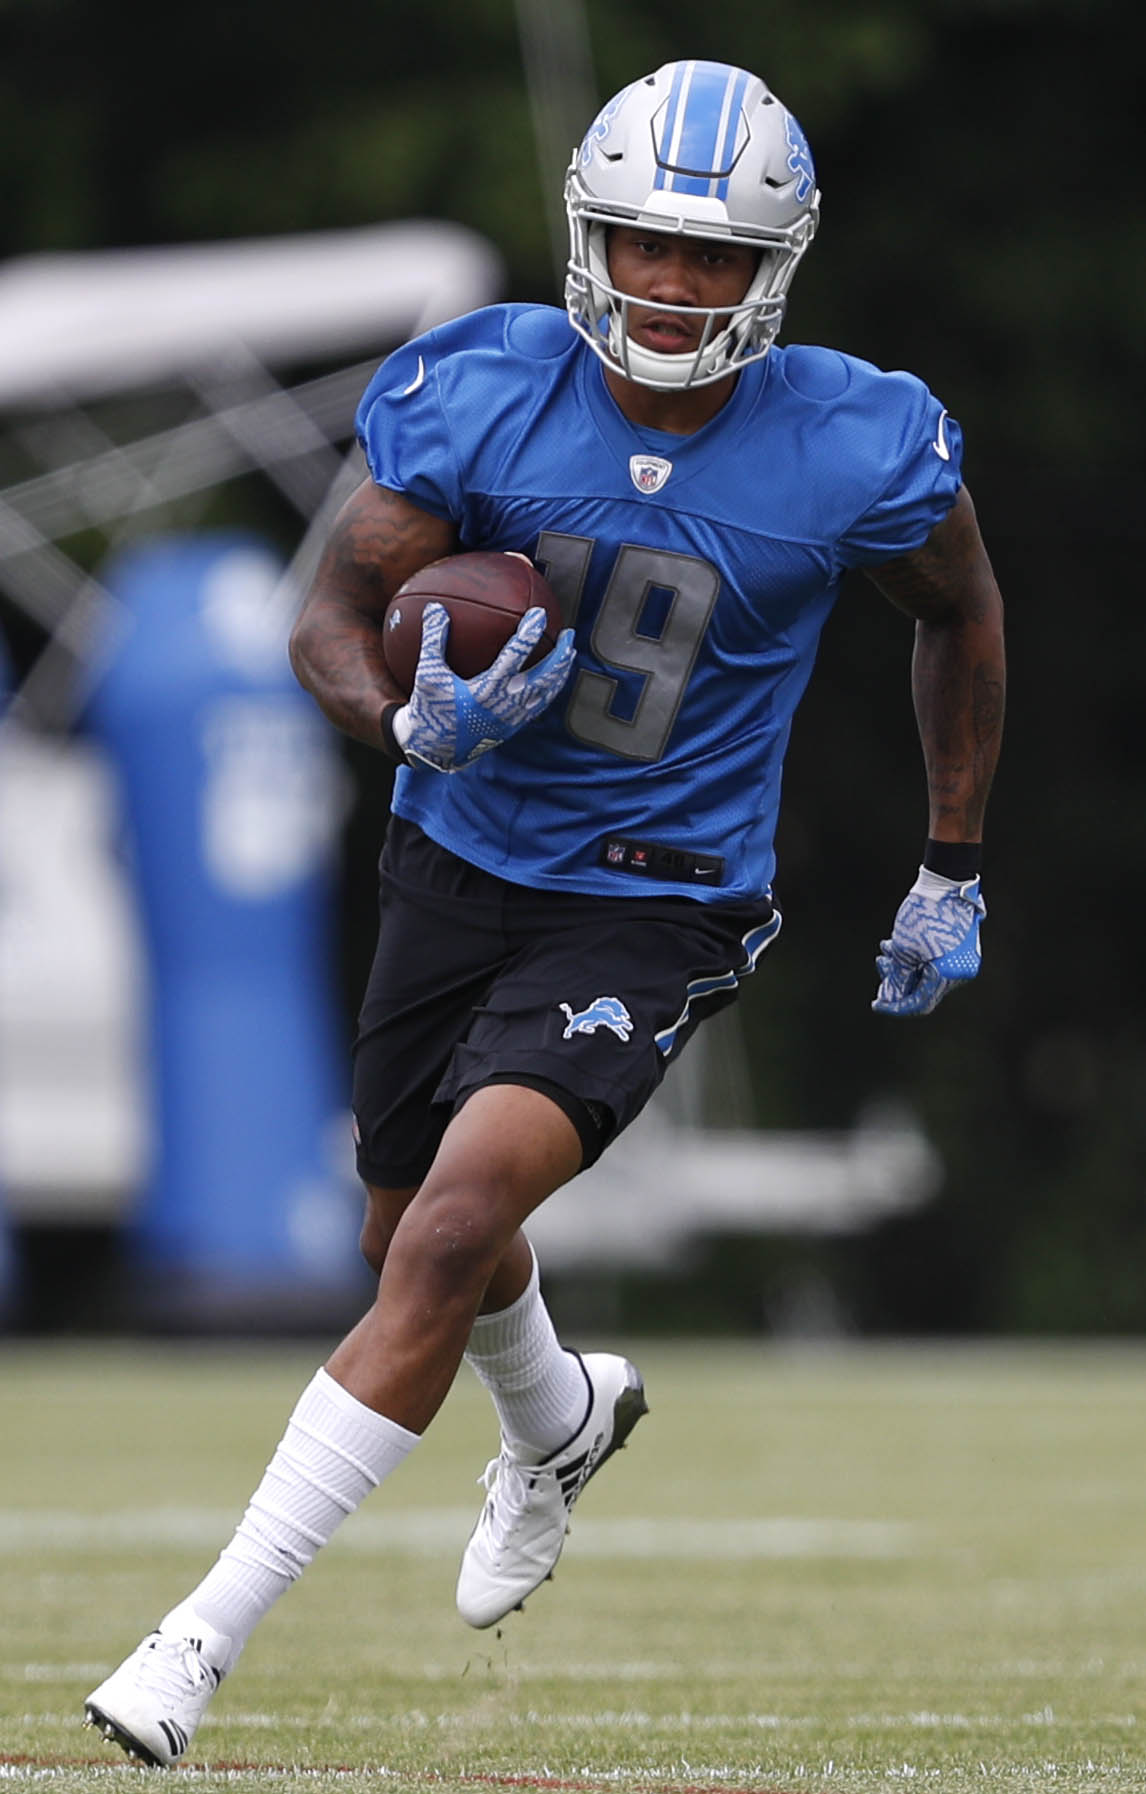 low priced 10291 4fe8f NFL Training Camp Rookie Profile: Kenny Golladay, WR ...